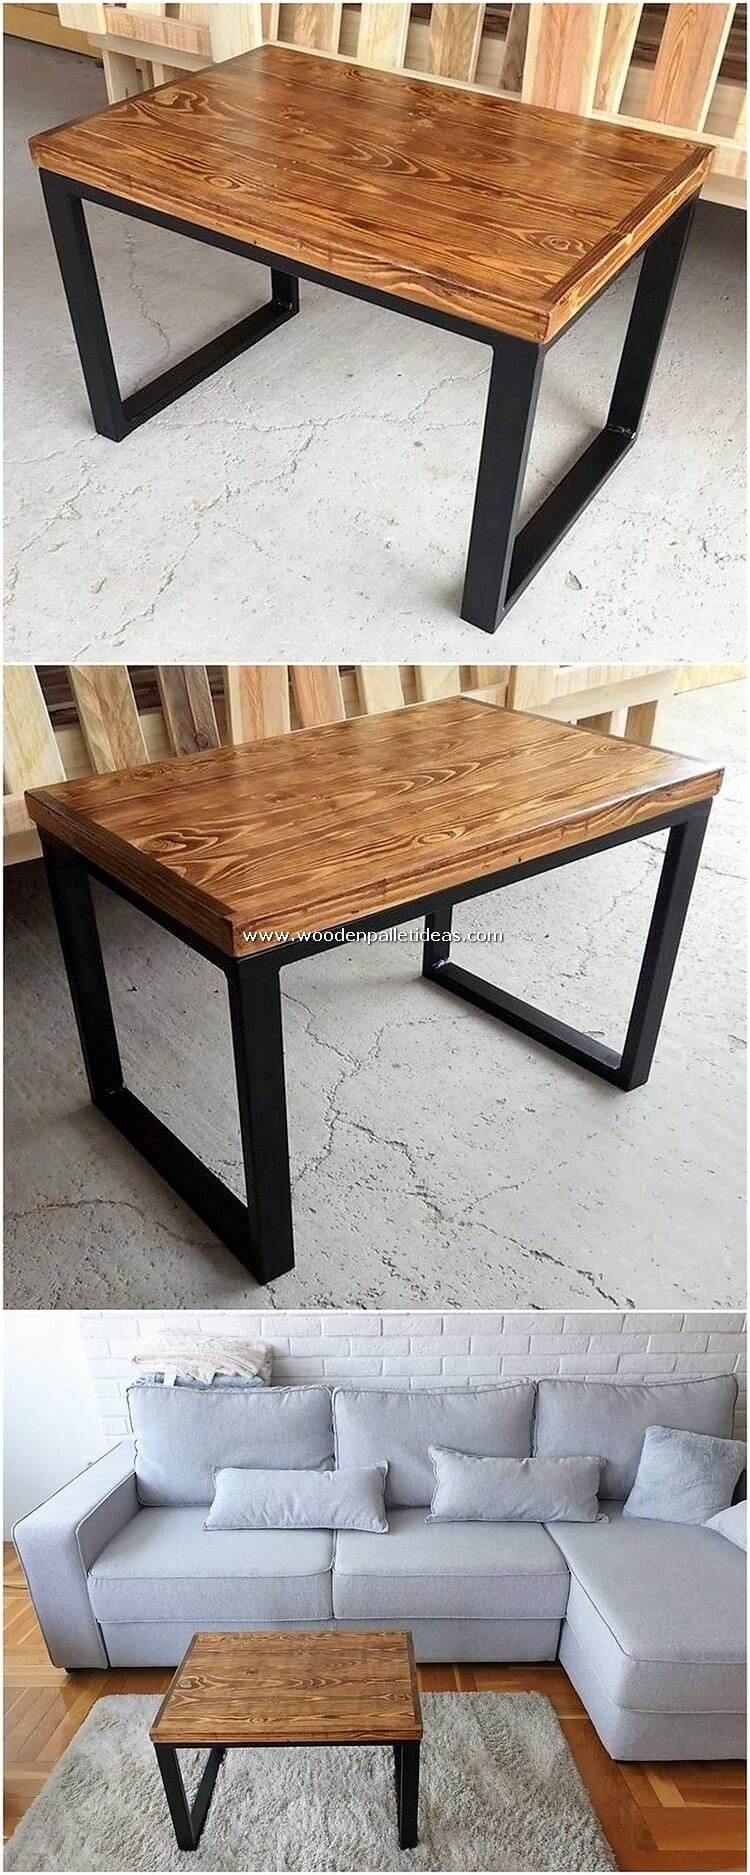 Pallet-Wood-Coffee-Table